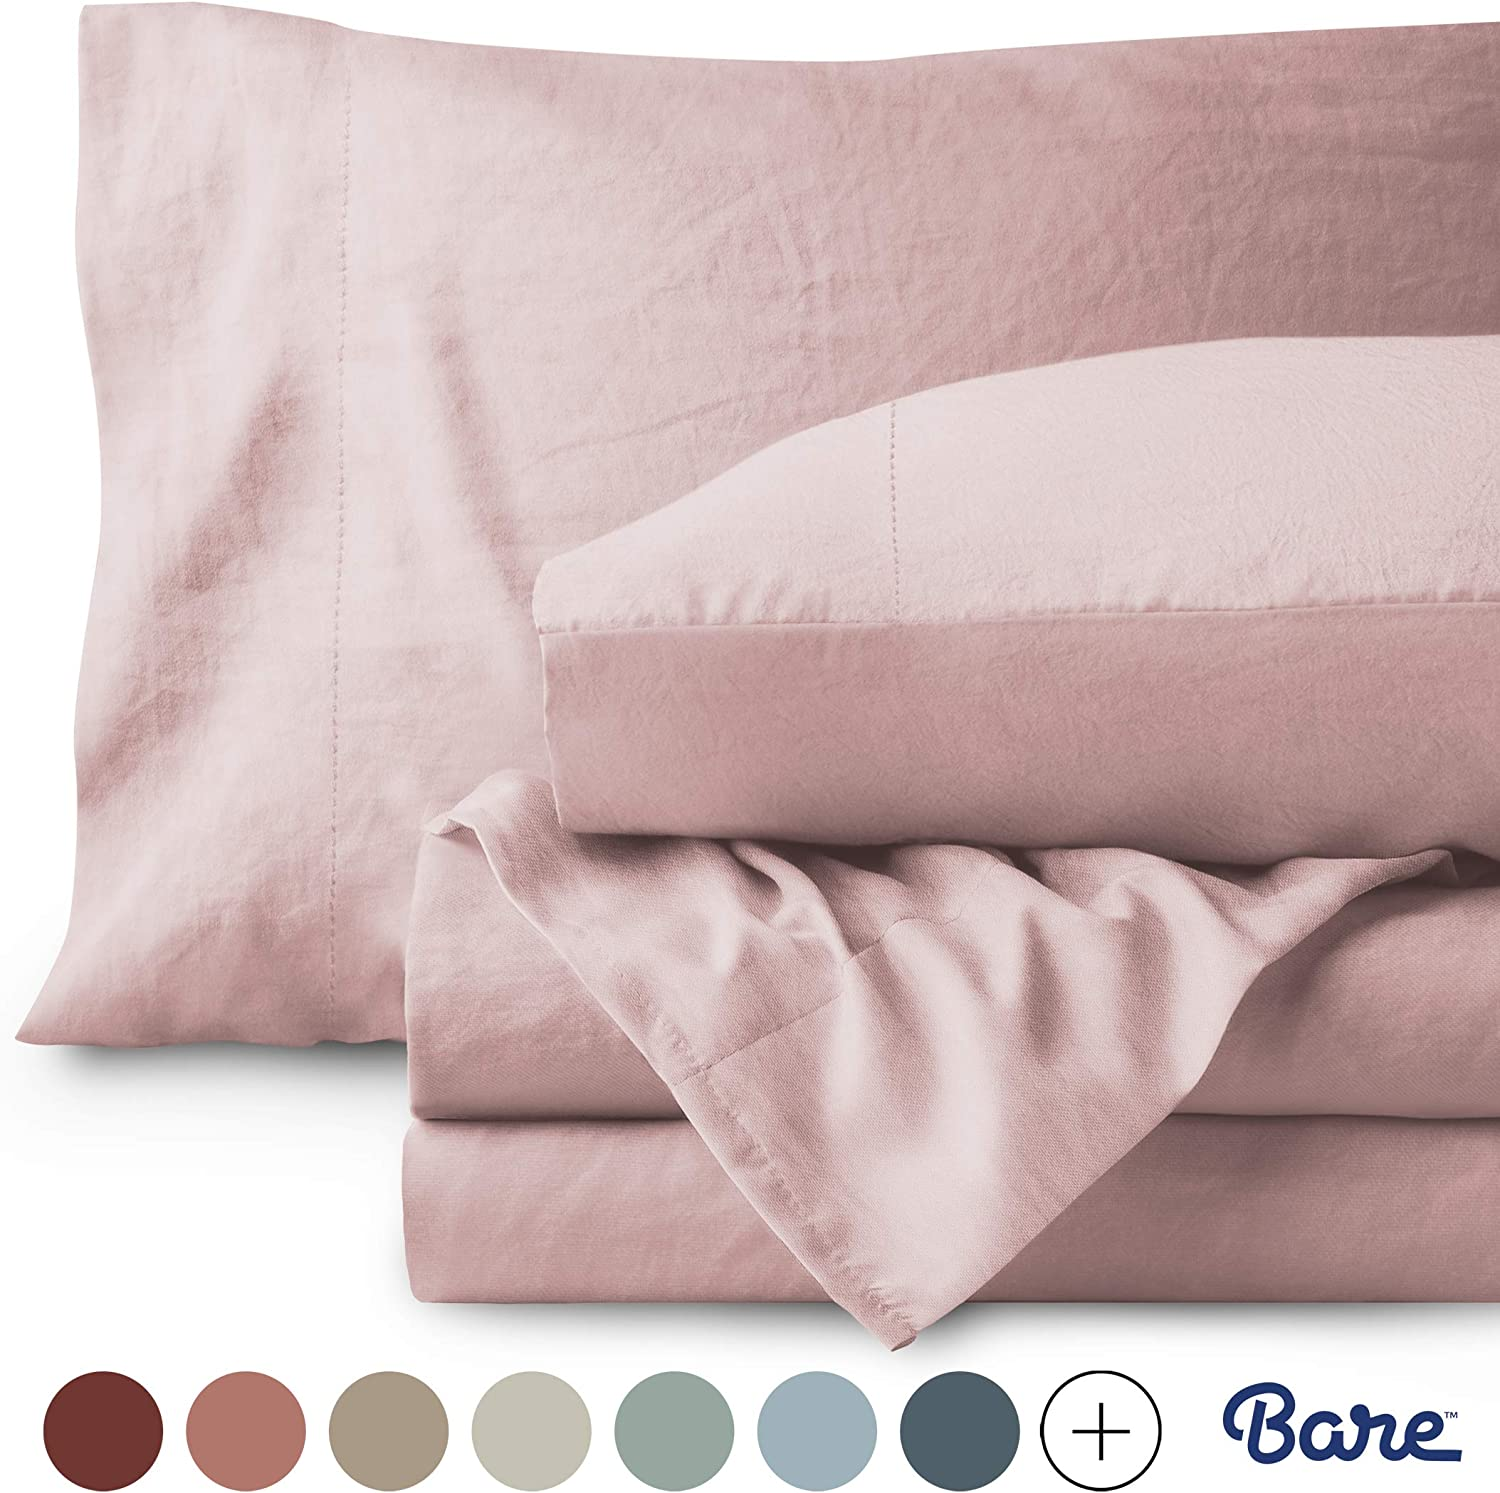 Bare Home Twin XL Sheet Set - College Dorm Size - Premium 1800 Ultra-Soft Microfiber Sheets Twin Extra Long - Double Brushed - Hypoallergenic - Stain Resistant (Twin XL, Sandwashed Dusty Pink)